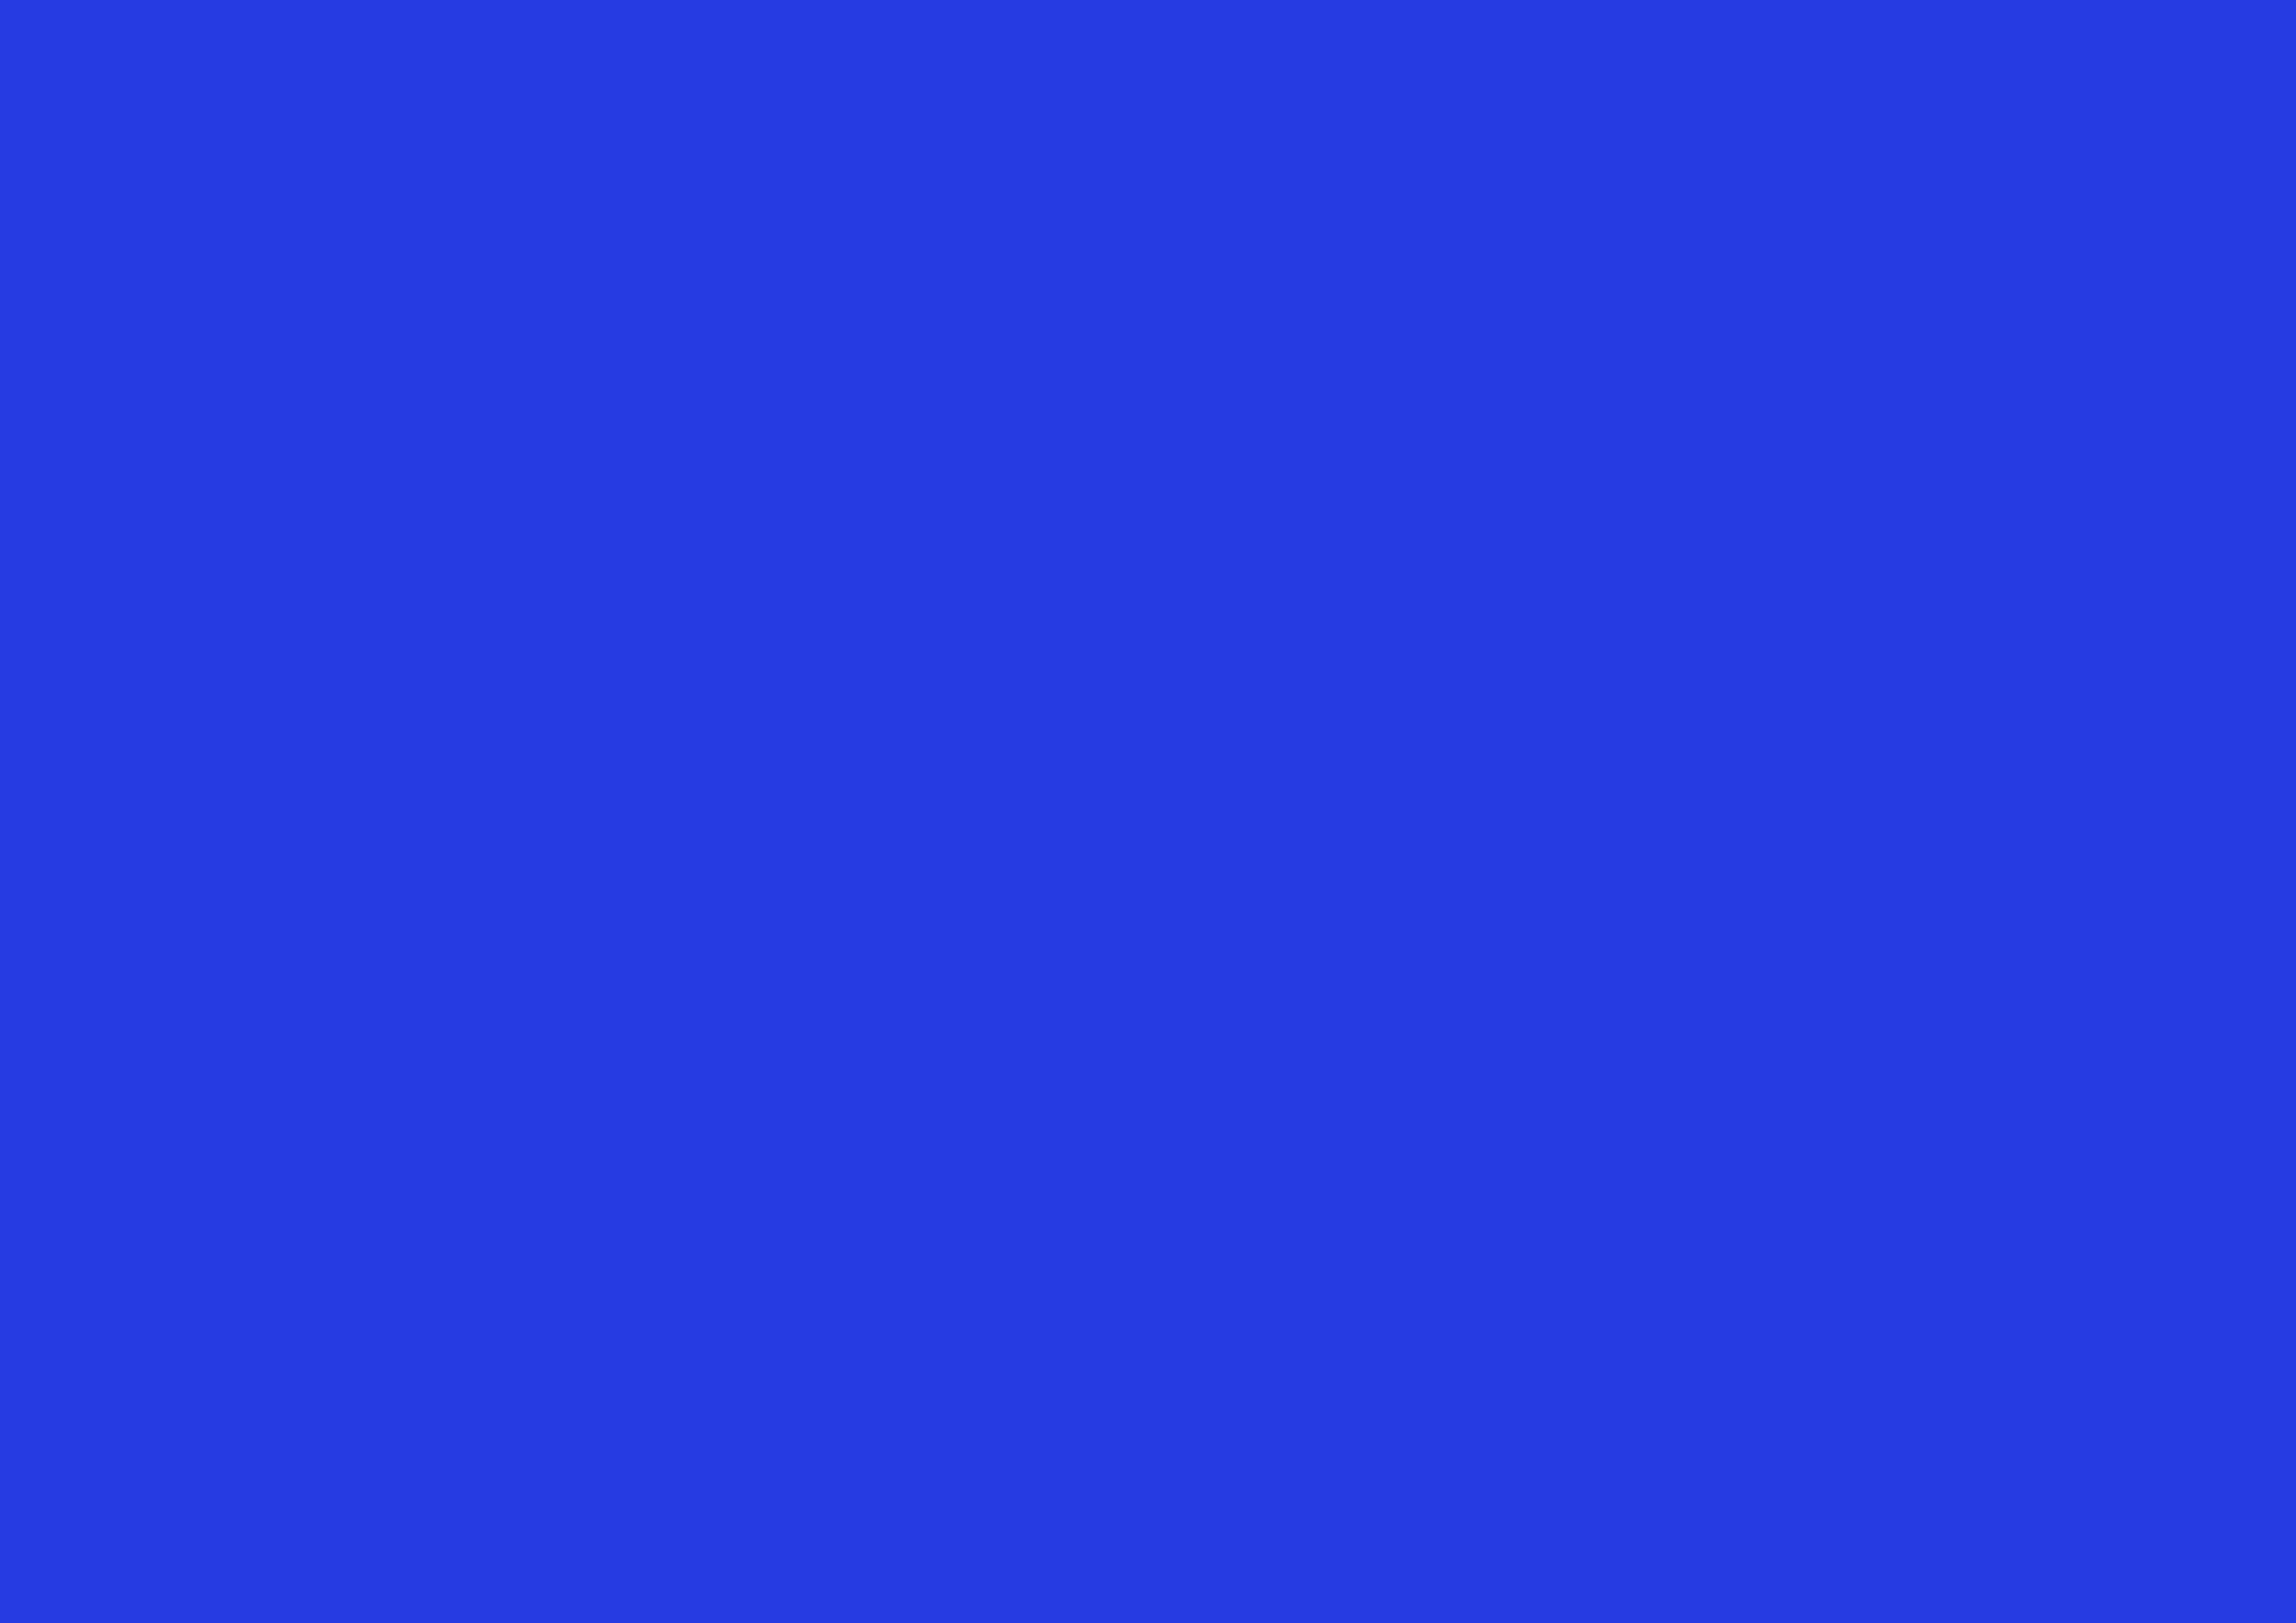 3508x2480 Palatinate Blue Solid Color Background